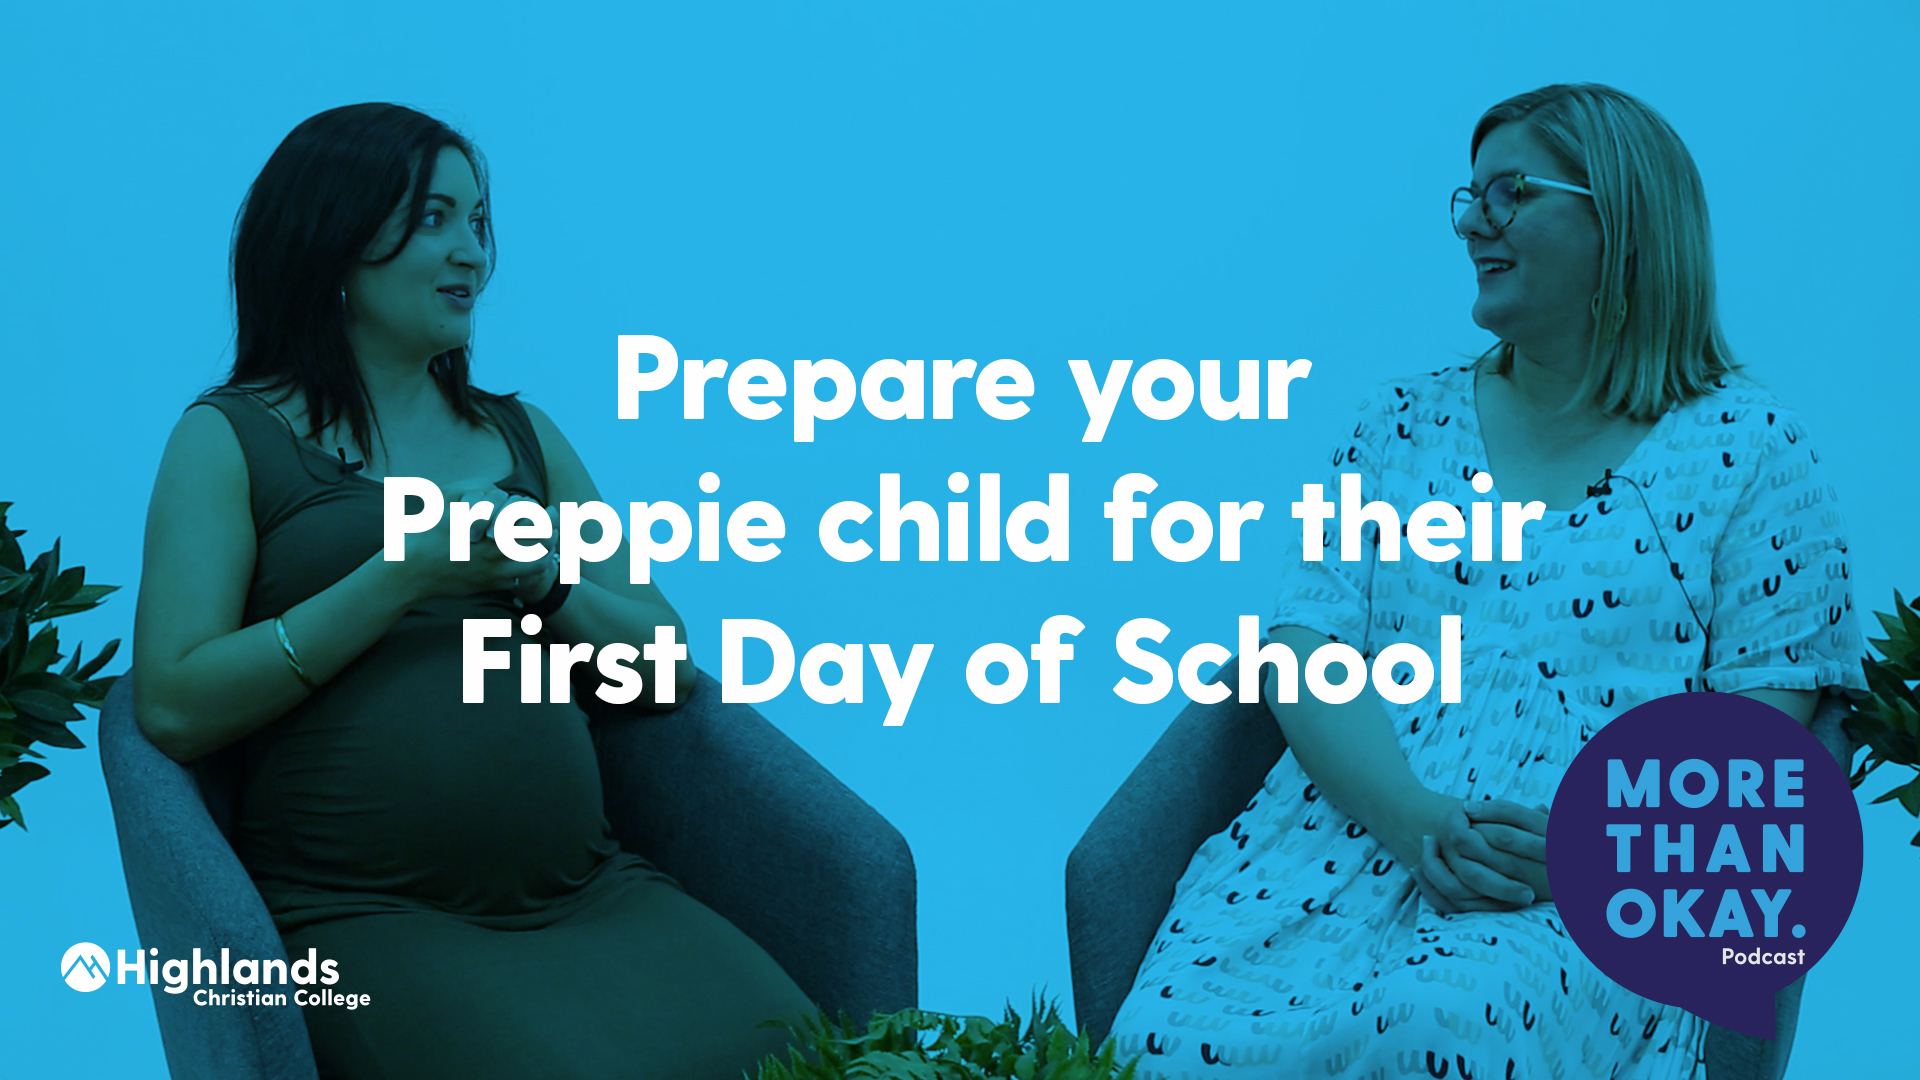 How to prepare your preppie for their first day of school